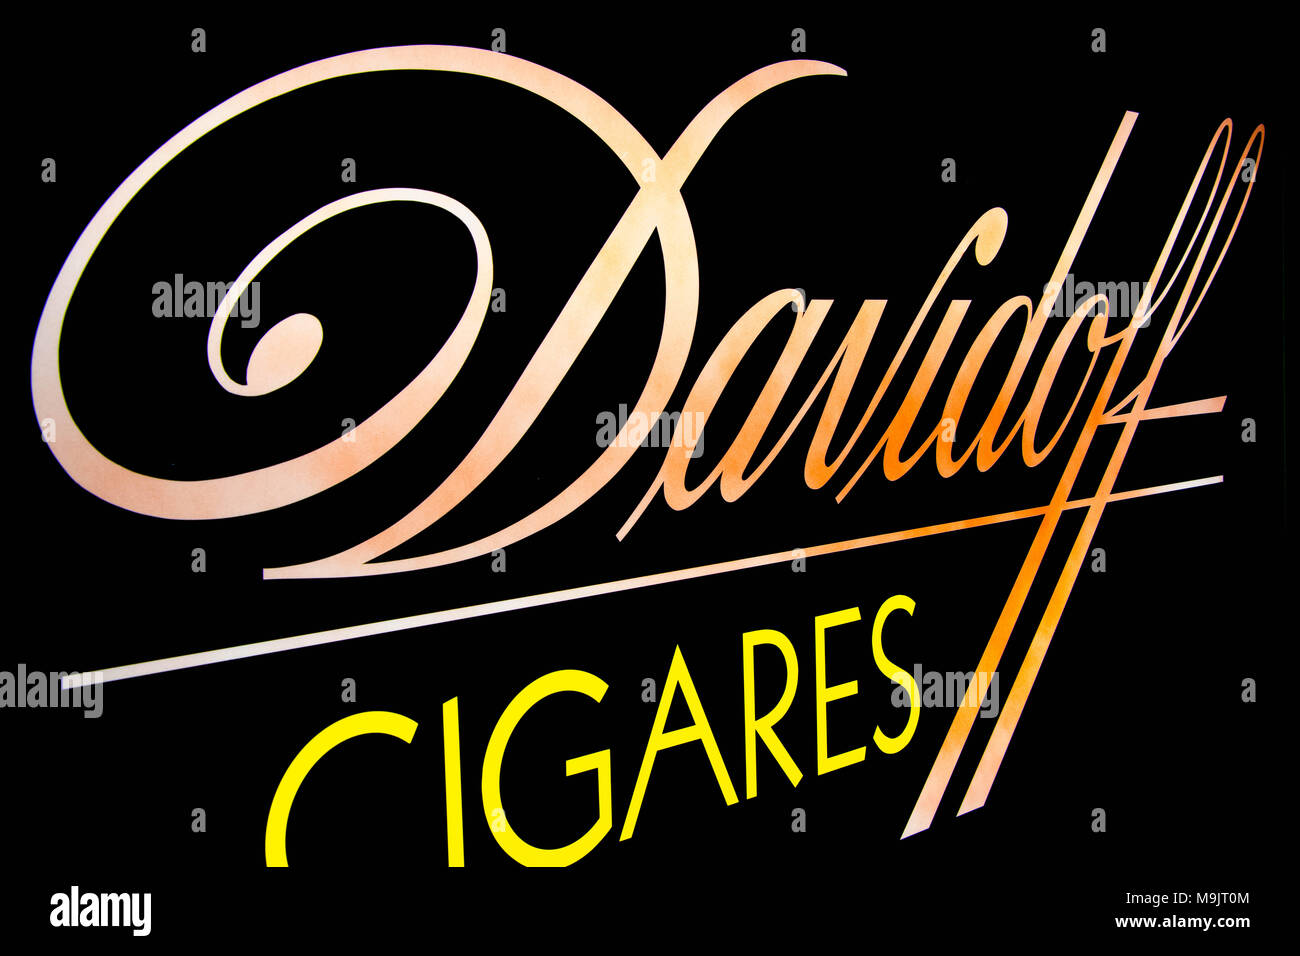 Where to get duty free cigarettes